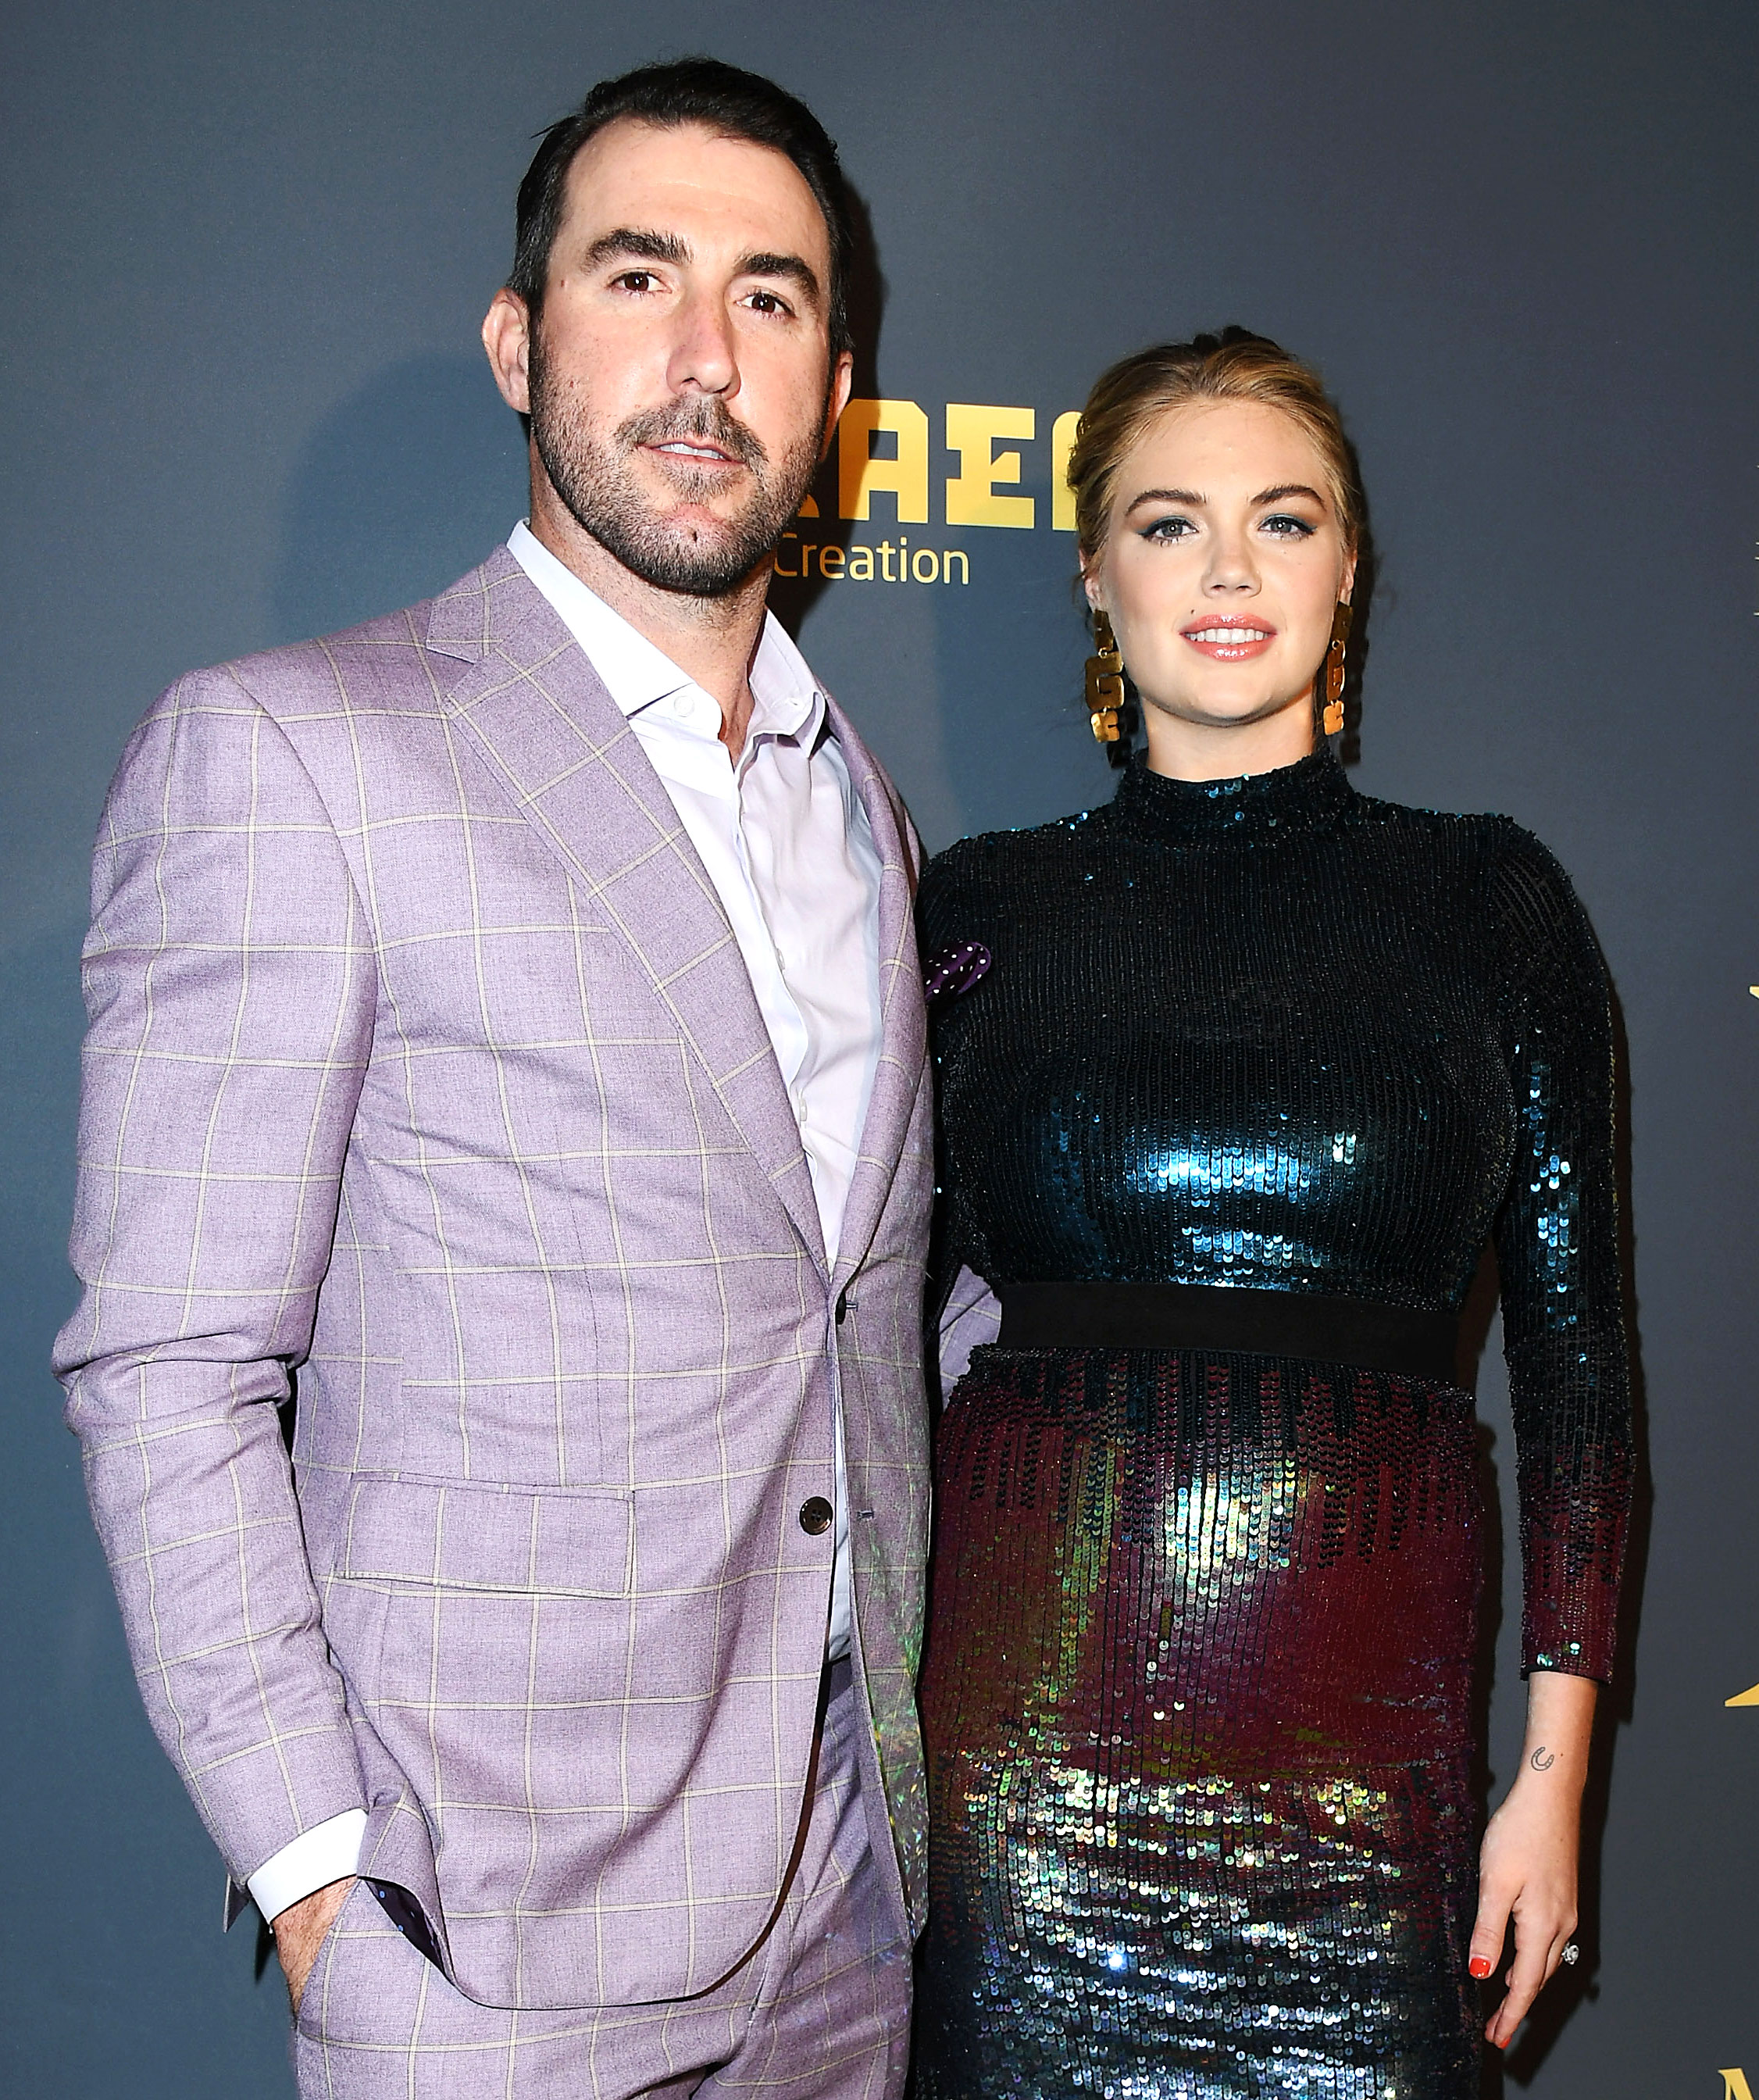 Justin Verlander Gushes About Kate Upton's 'Tremendous' Transition to Motherhood Four Months After Welcoming Daughter - Justin Verlander and Kate Upton attend The Maxim Hot 100 Experience at Hollywood Palladium on July 21, 2018 in Los Angeles, California.